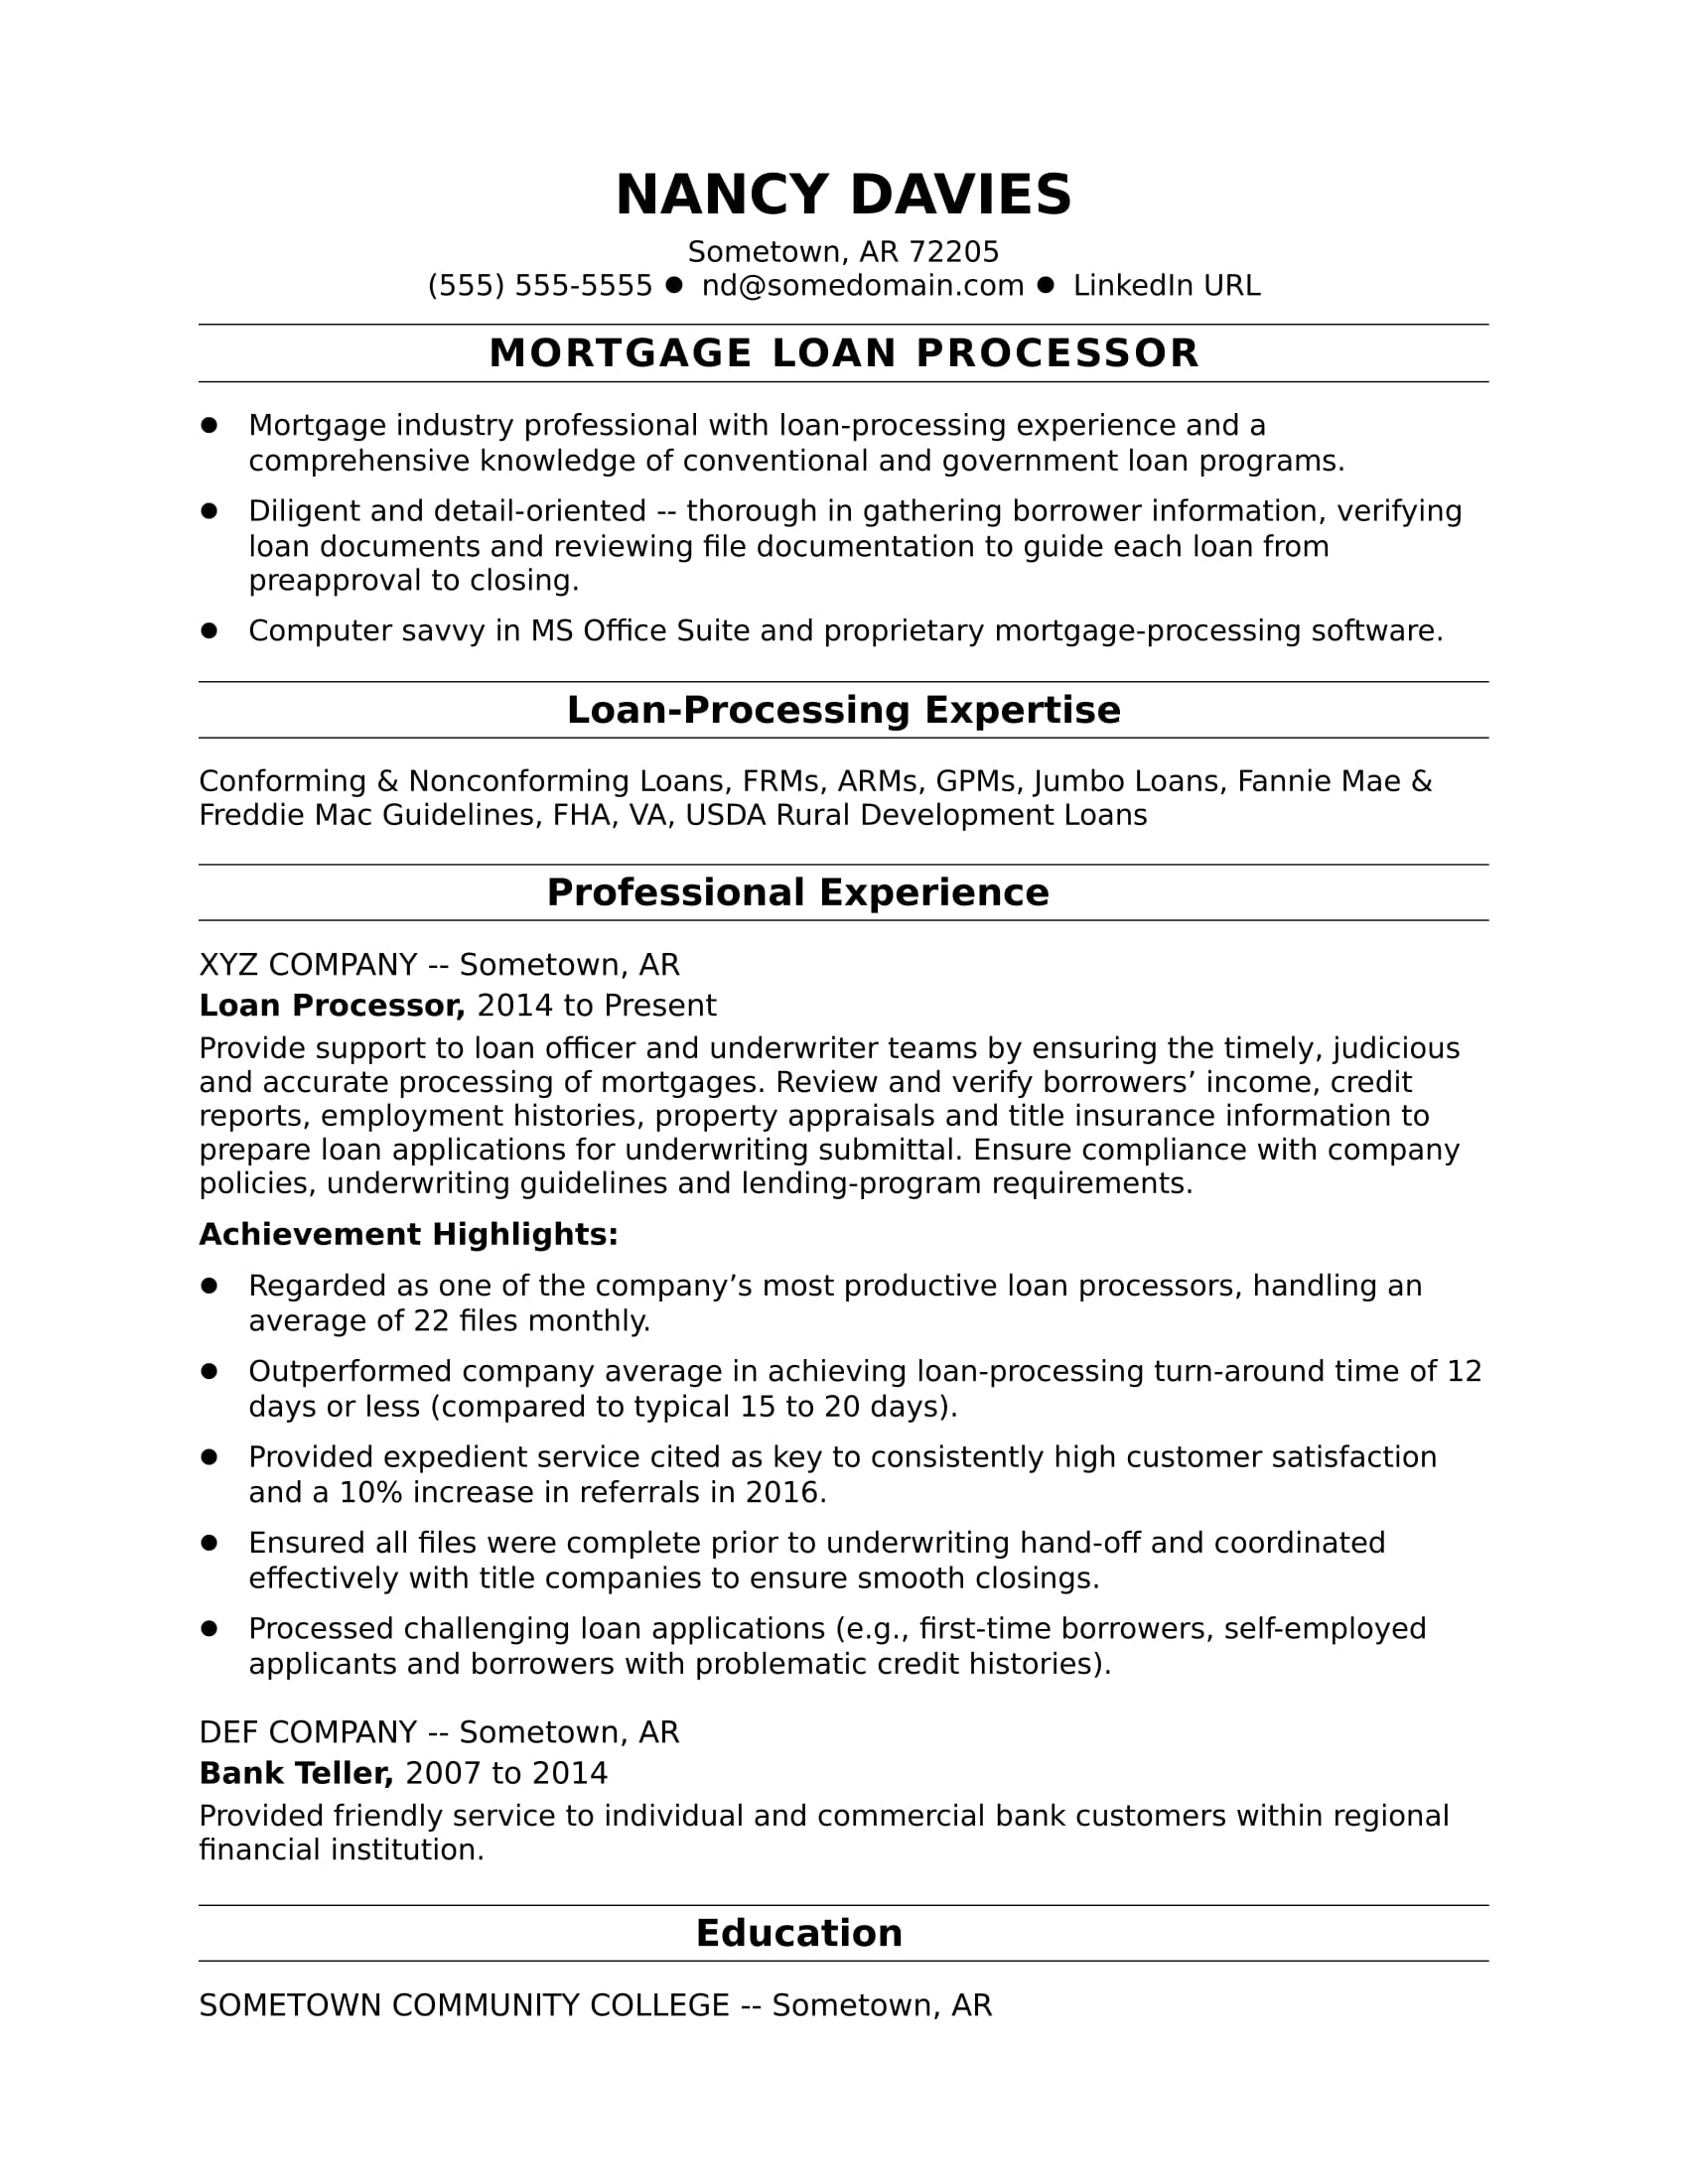 sample resume for a mortgage loan processor - A Sample Of Resume